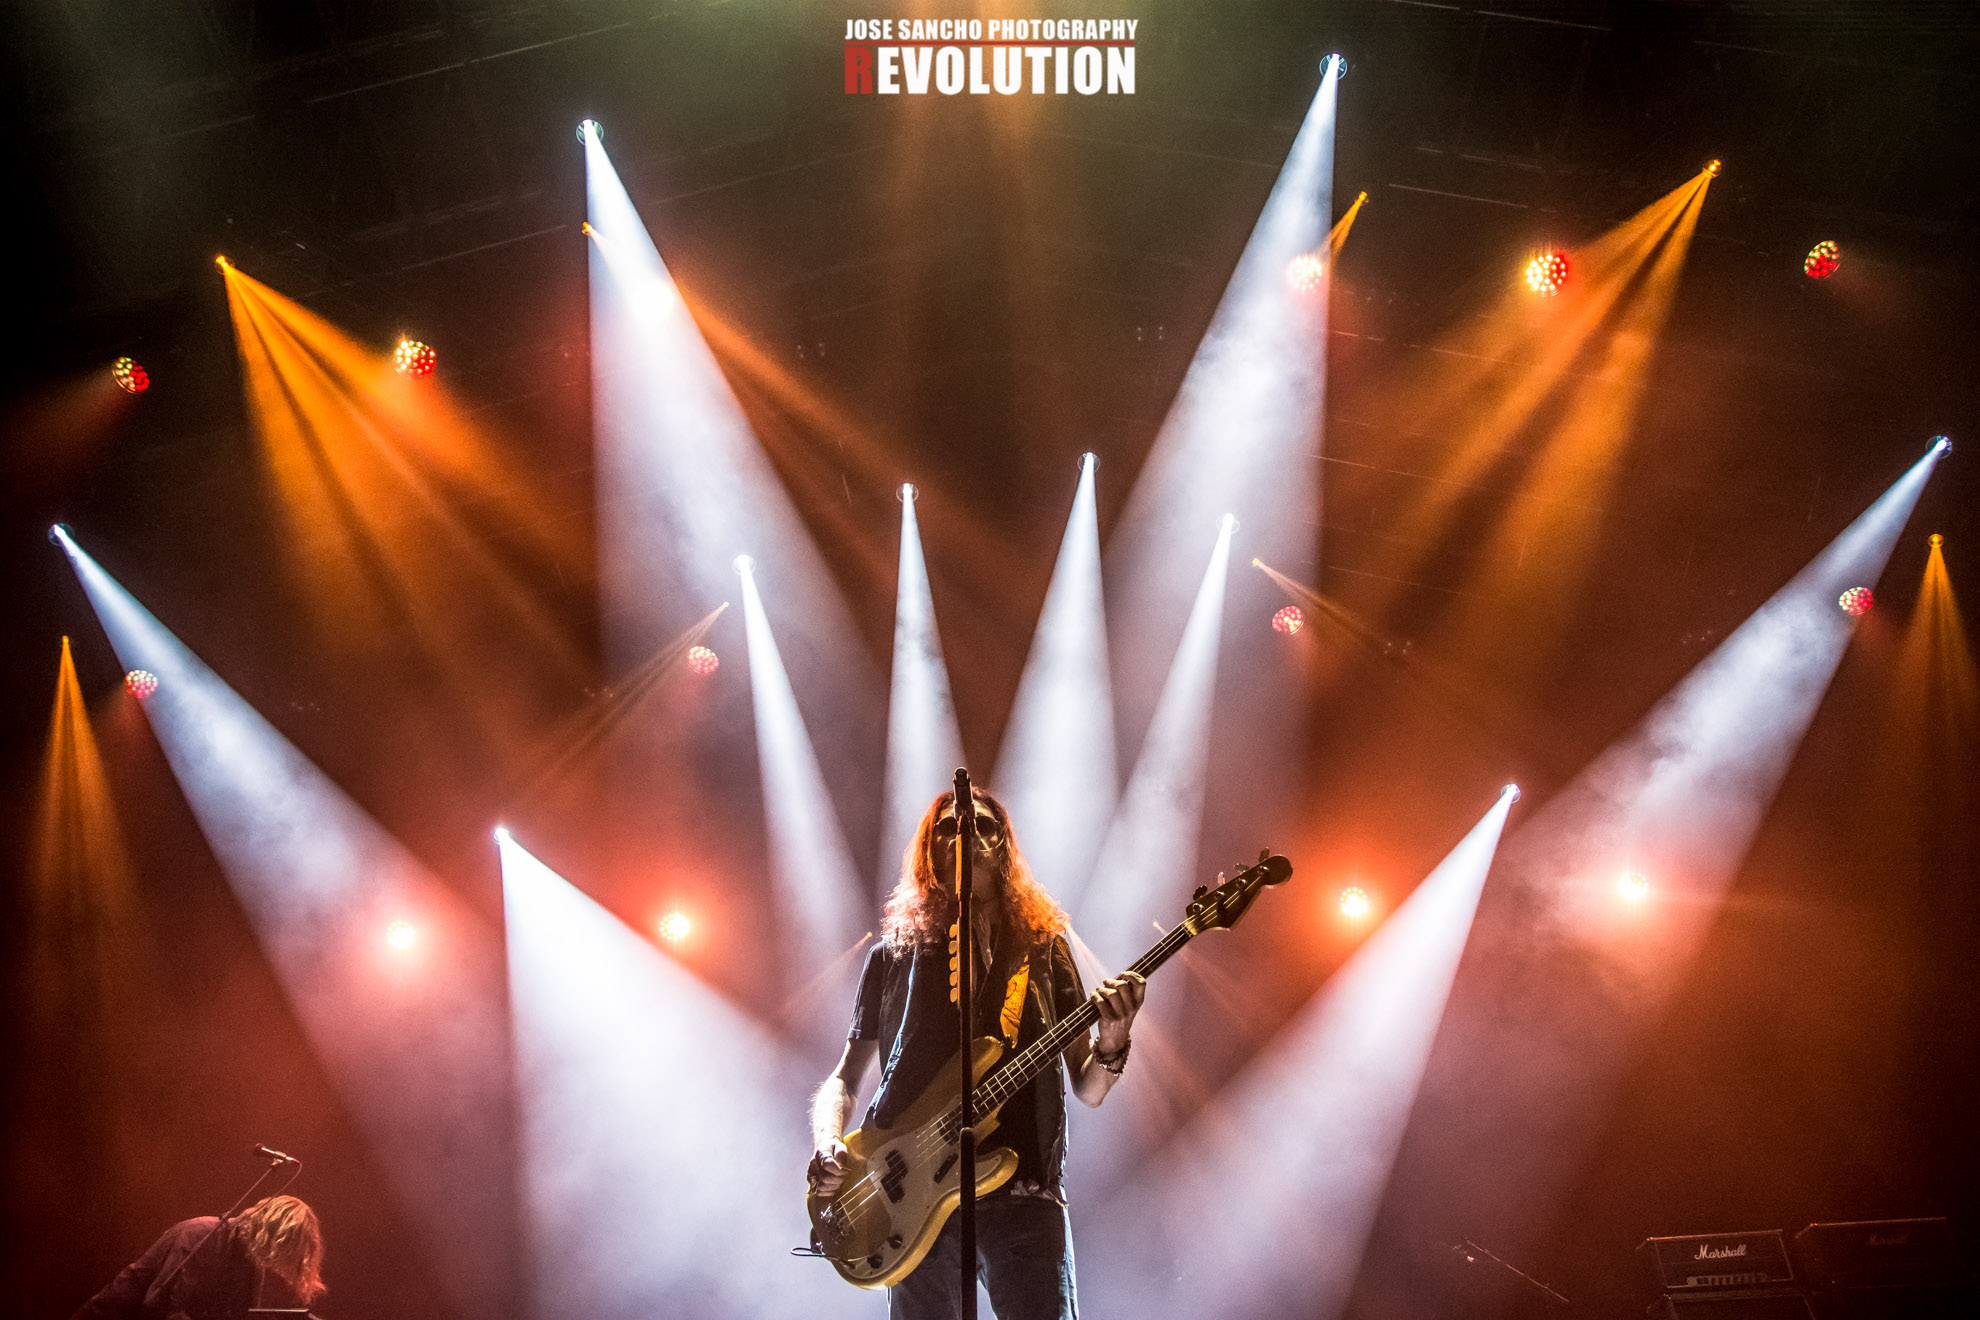 Glenn Hughes - Jose Sancho Photography